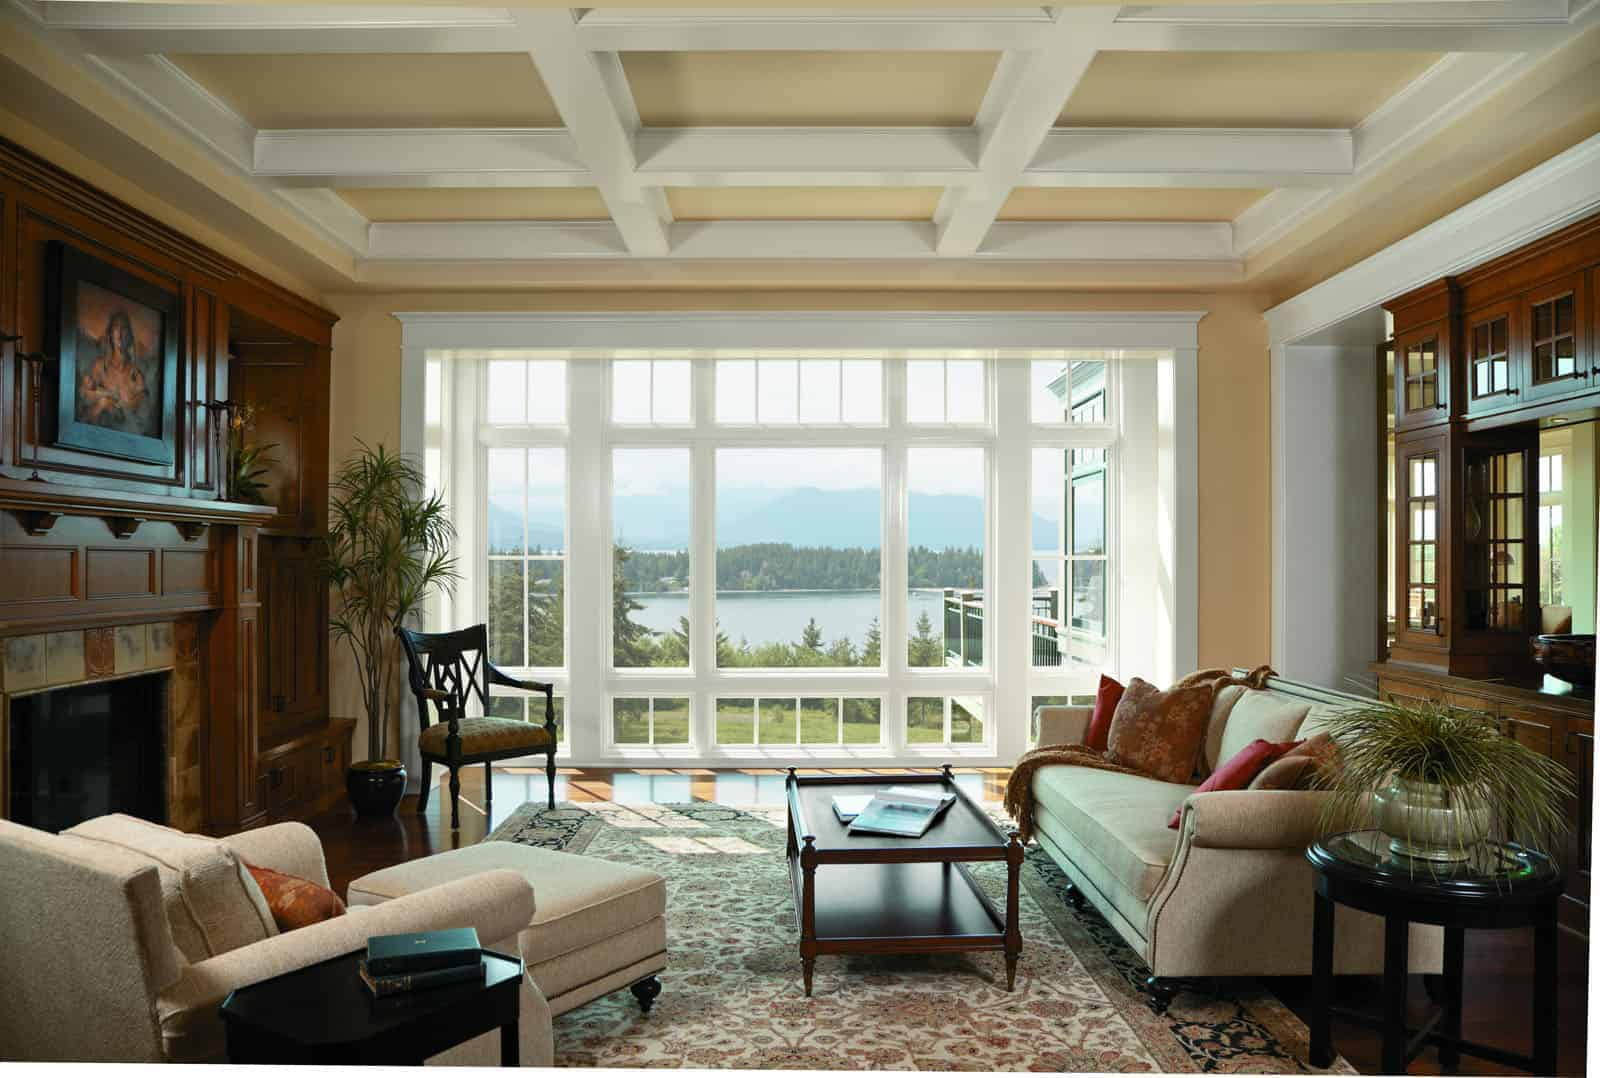 Large wooden windows overlook lake at mountain home